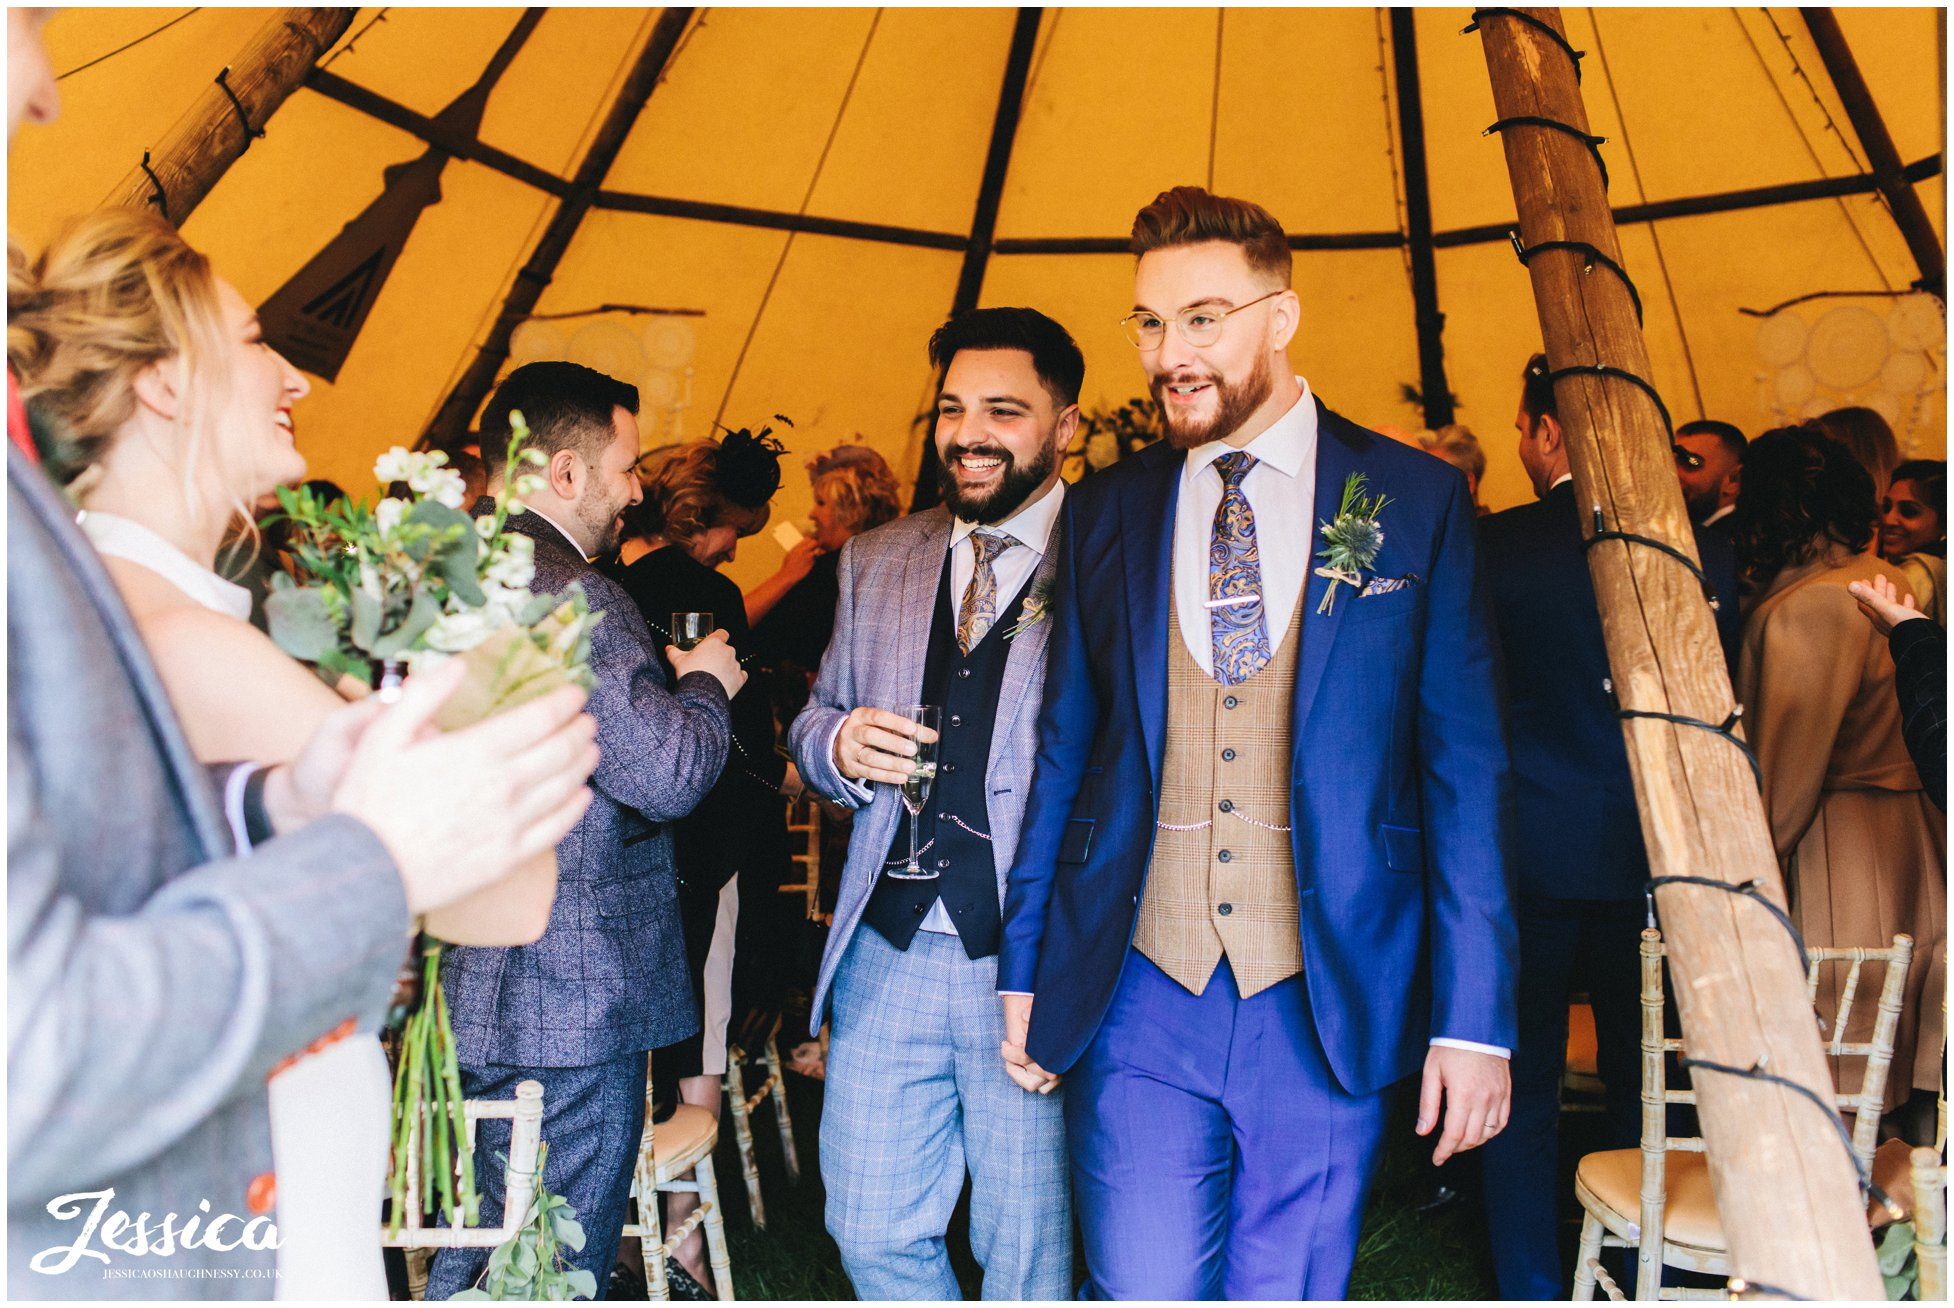 the newly wed's walk out of the tipi as husband and husband